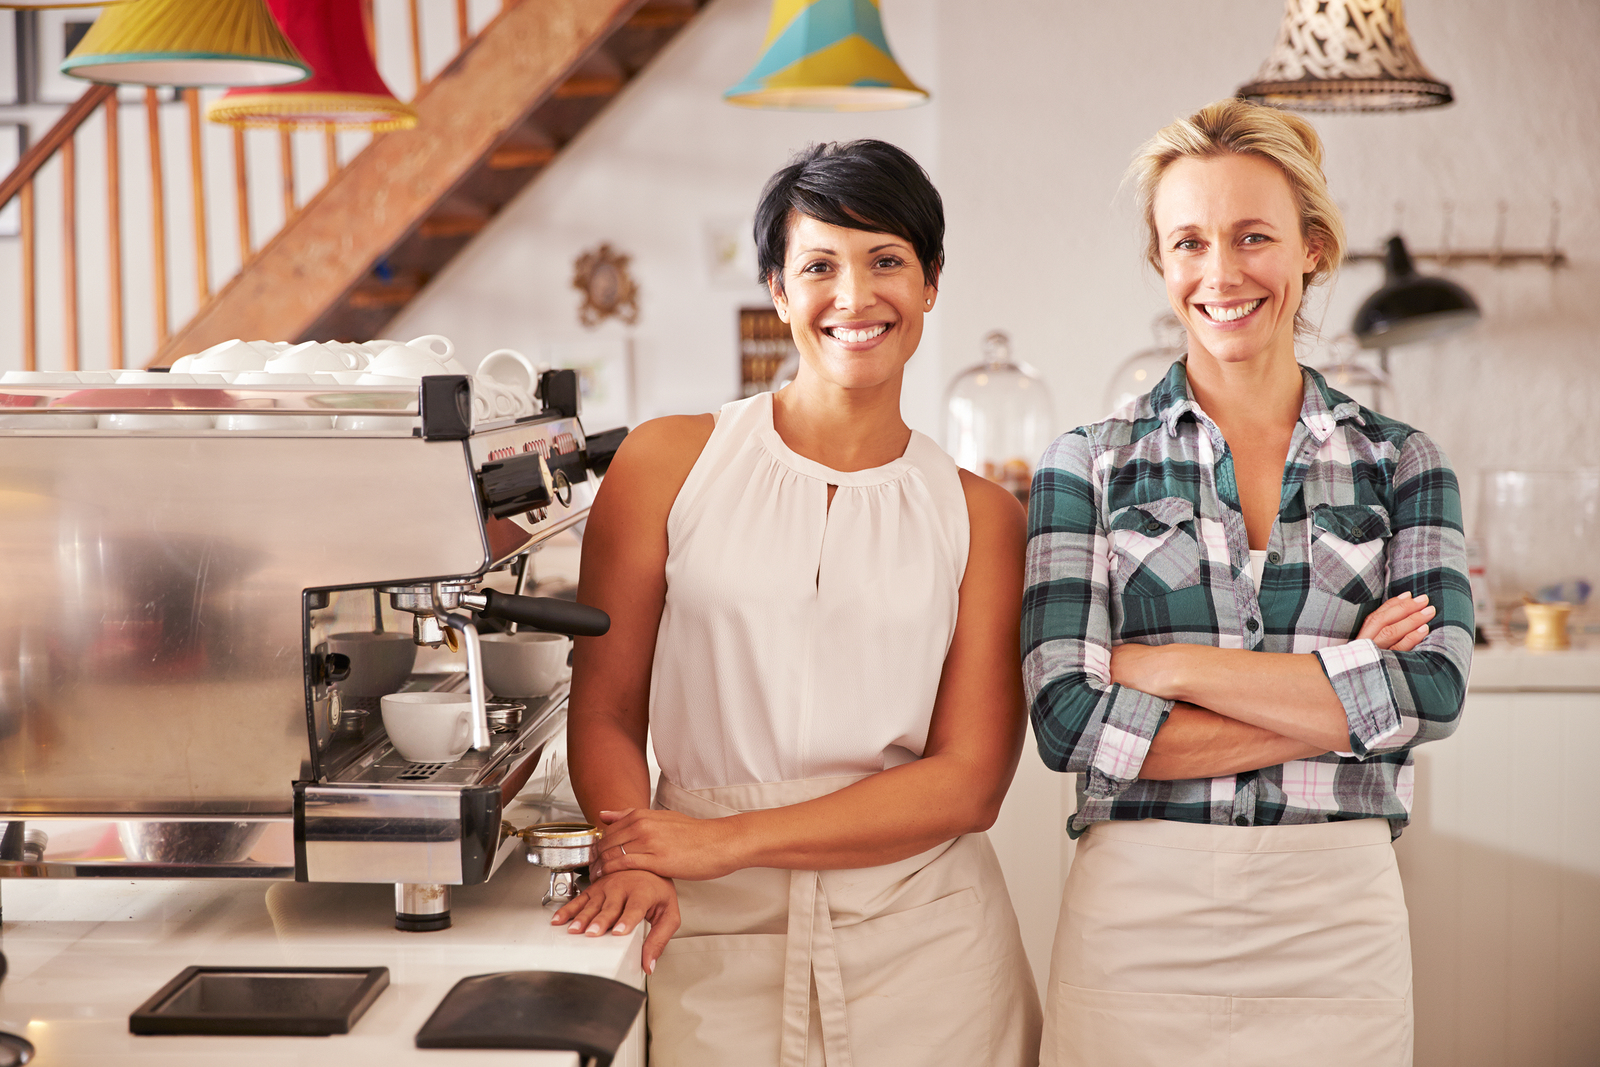 Here's Why Small Business Owners Should Offer Health Insurance To Employees